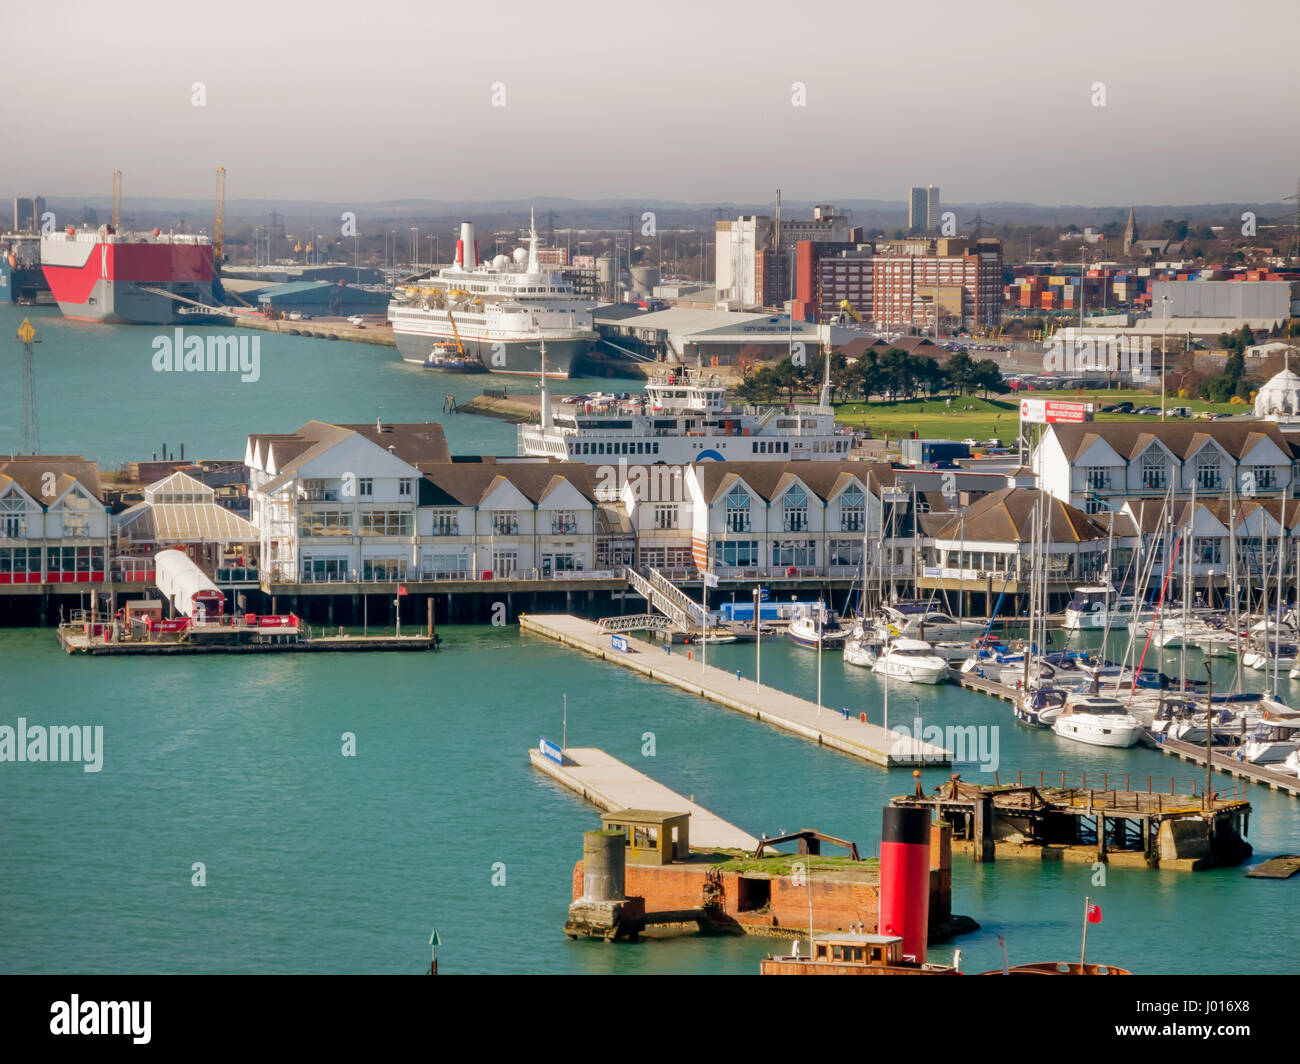 SOUTHAMPTON, UK - 27 MARCH 2017: Southampton Docks, Marina, and Boats in Working Harbour, England, United Kingdom - Stock Image